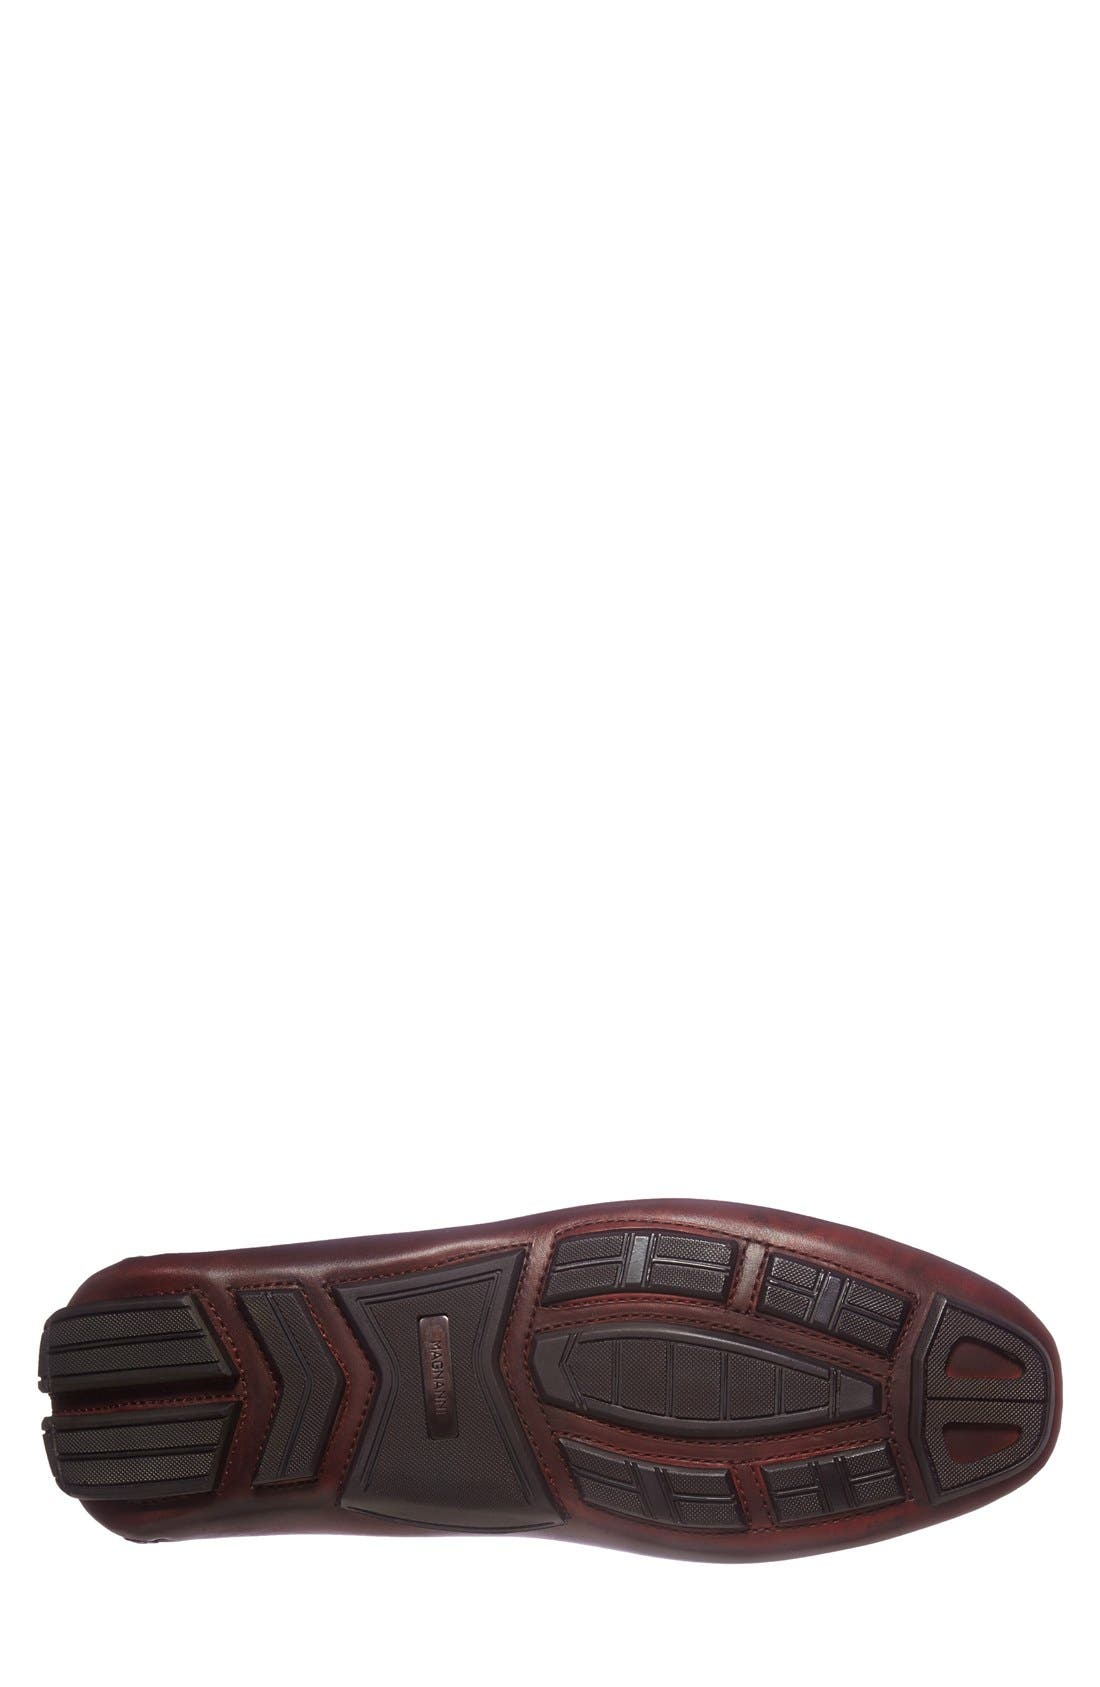 'Dylan' Leather Driving Shoe,                             Alternate thumbnail 23, color,